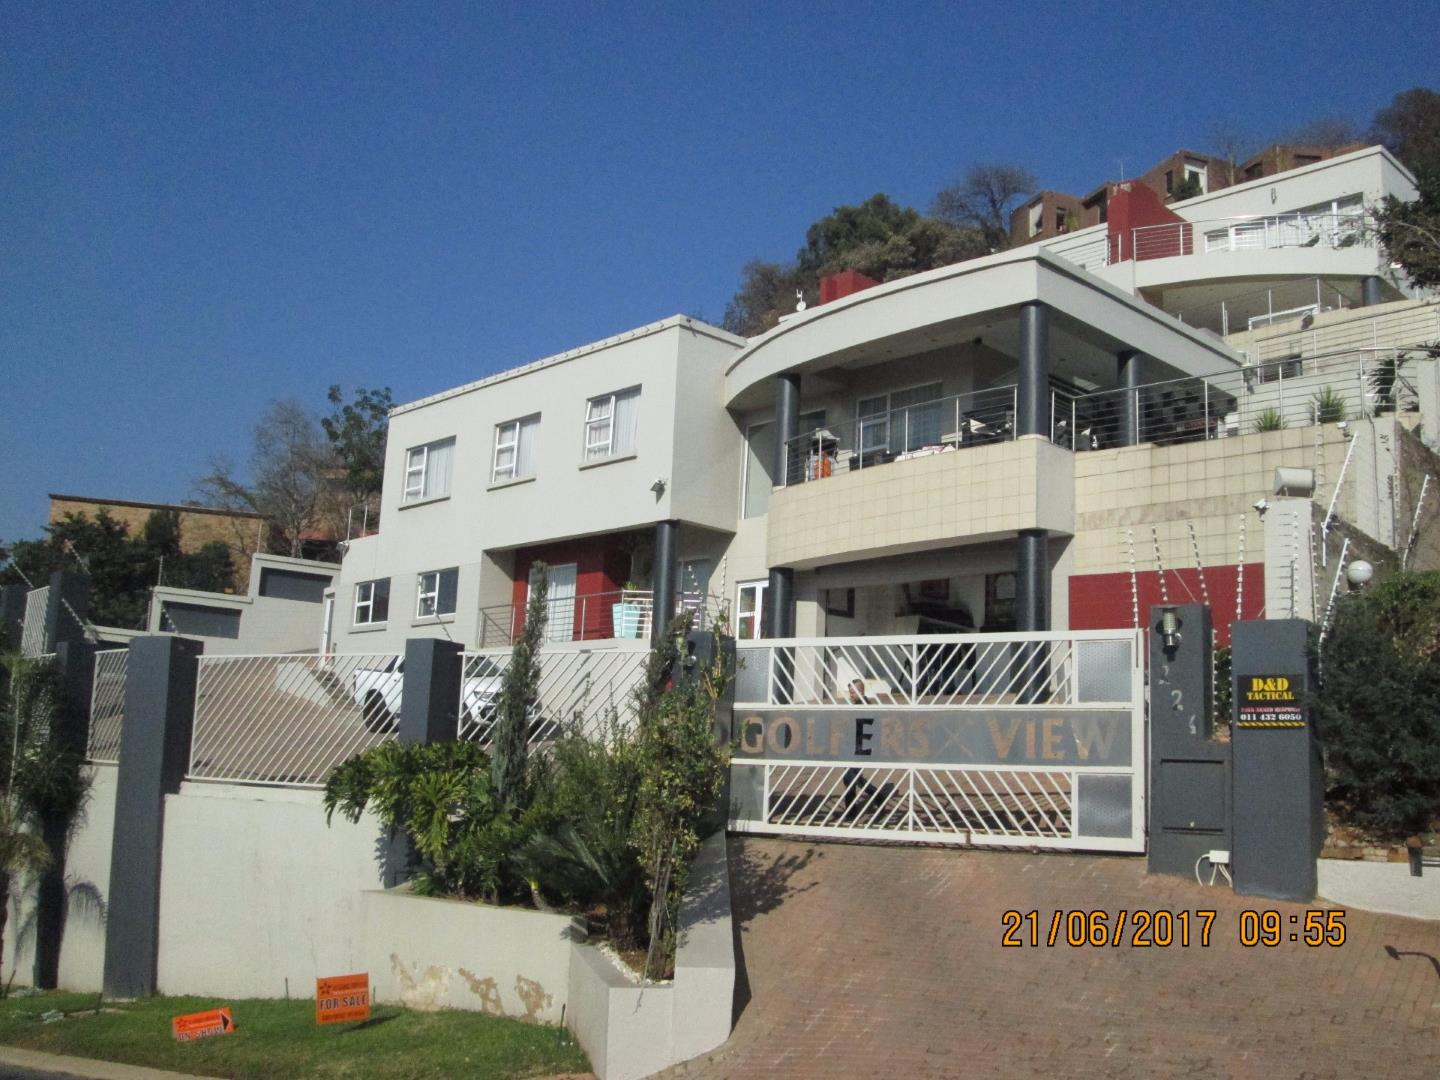 Johannesburg, Glenvista Property  | Houses For Sale Glenvista, Glenvista, Townhouse 3 bedrooms property for sale Price:3,599,000